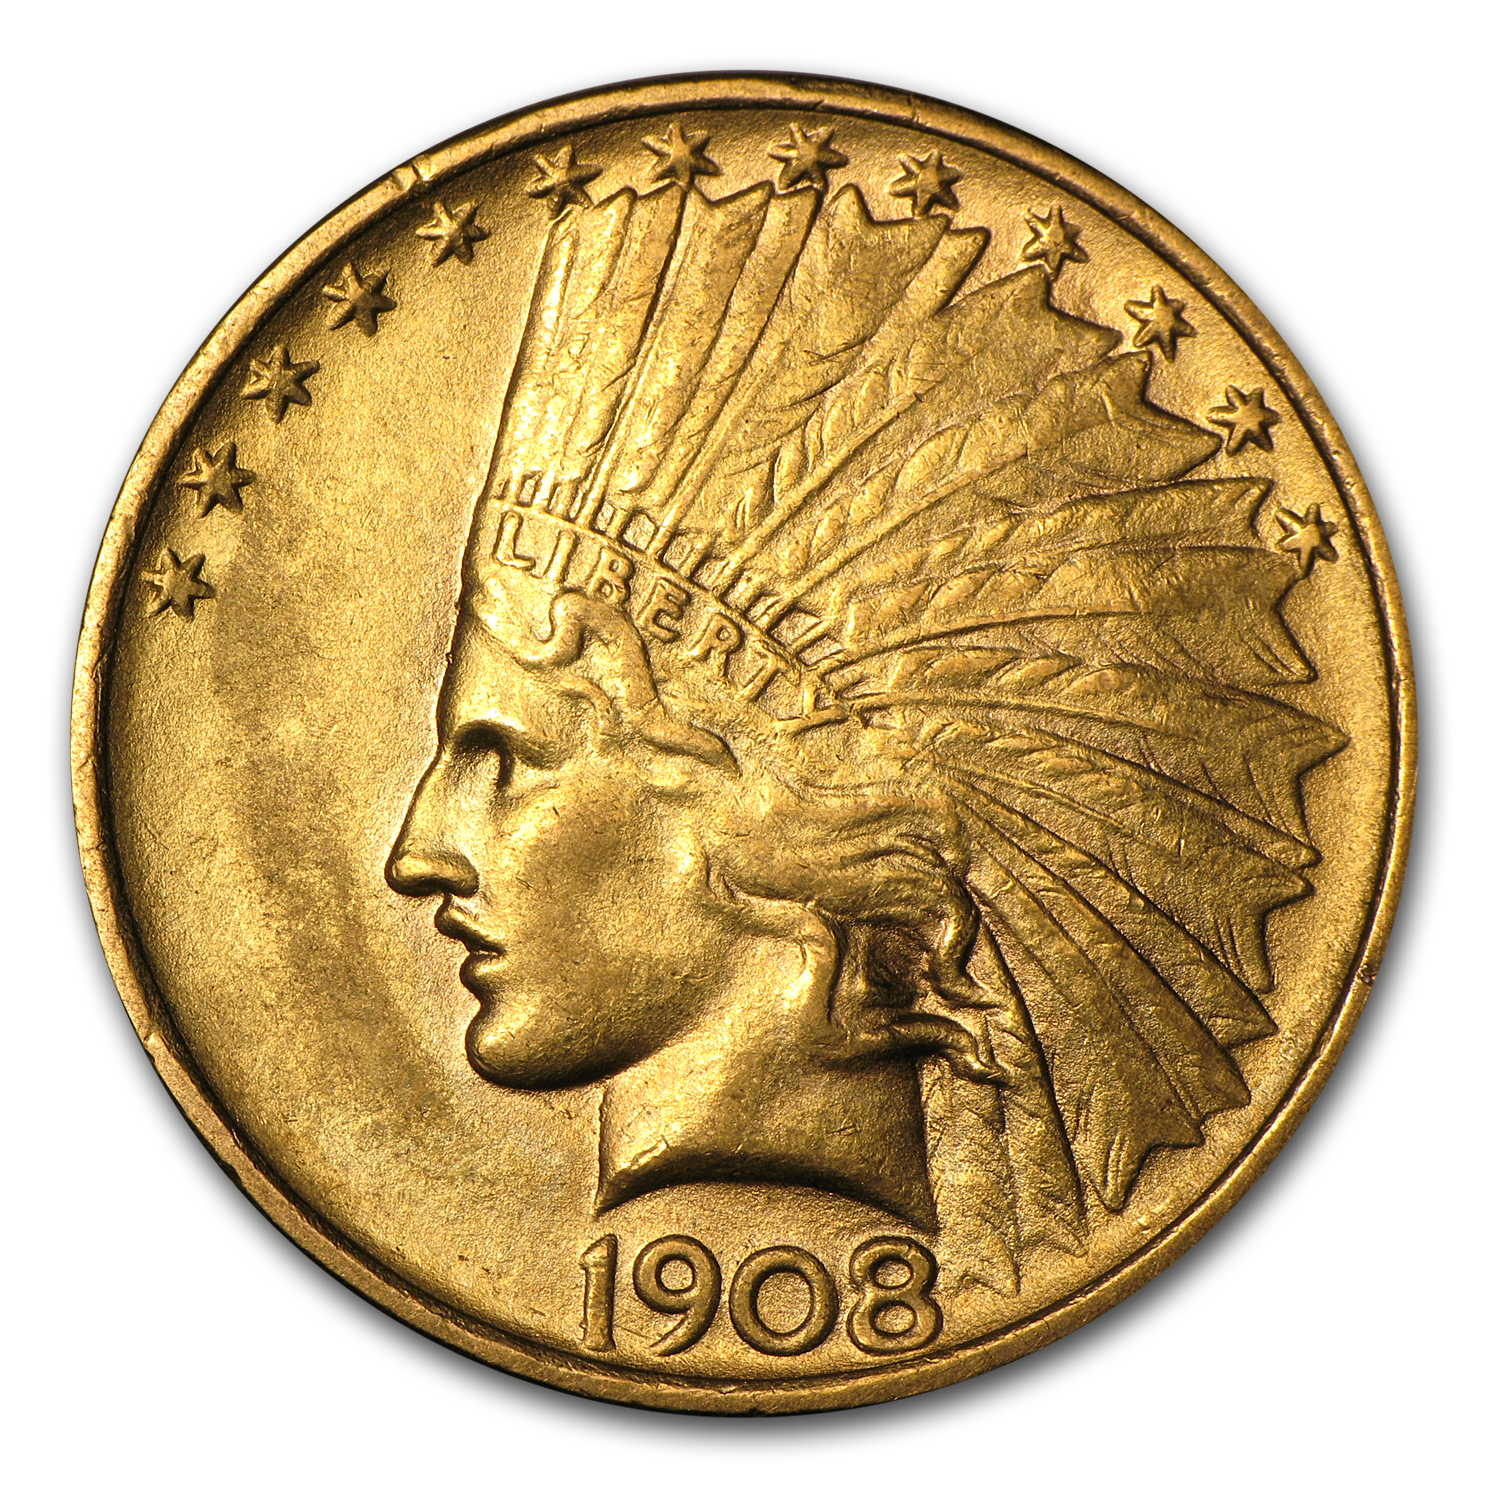 1908 $10 Indian Gold Eagle No Motto Almost Uncirculated